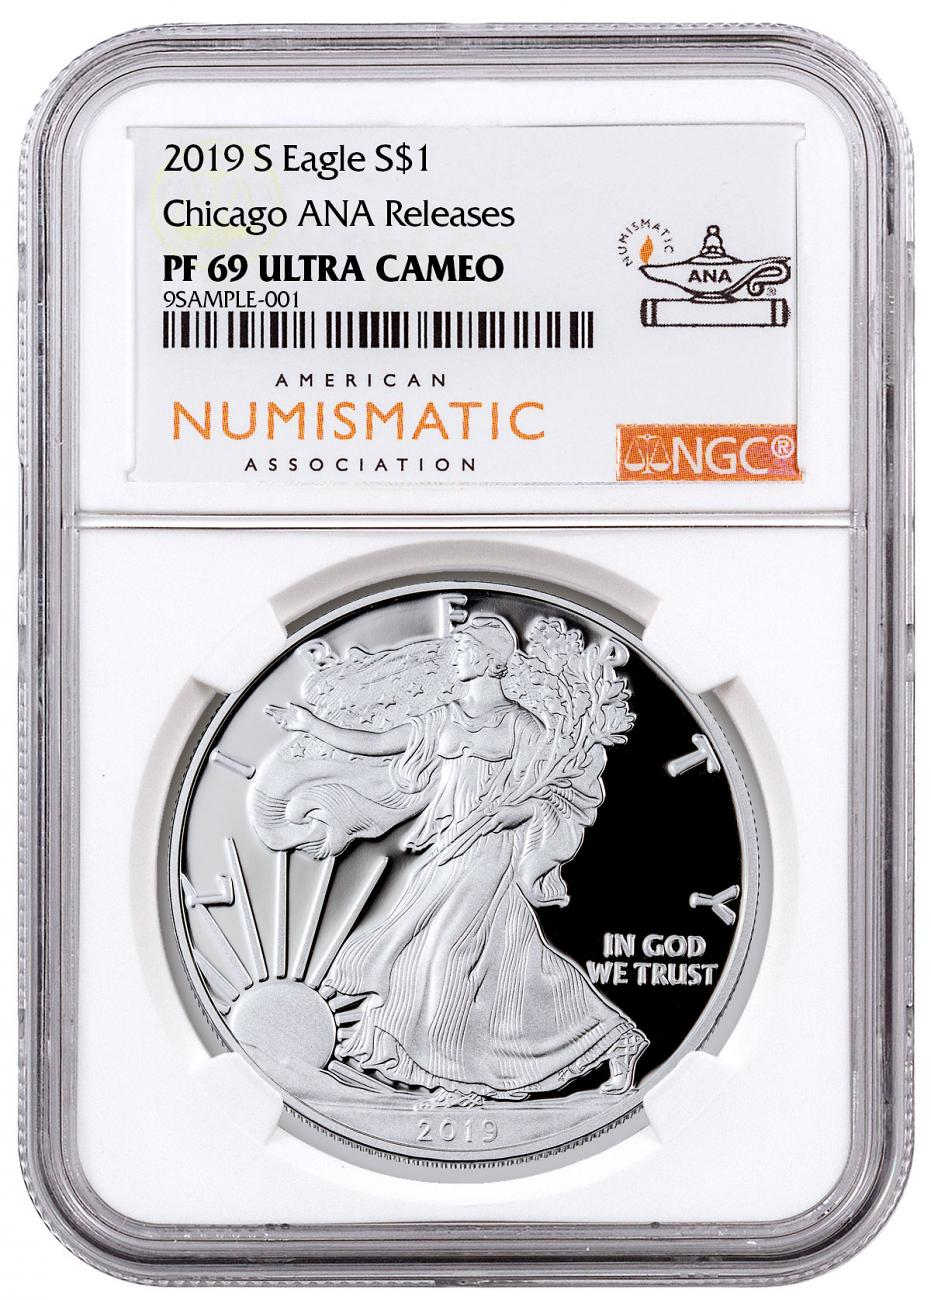 2019-S 1 oz Proof American Silver Eagle NGC PF69 UC Chicago ANA Show Releases